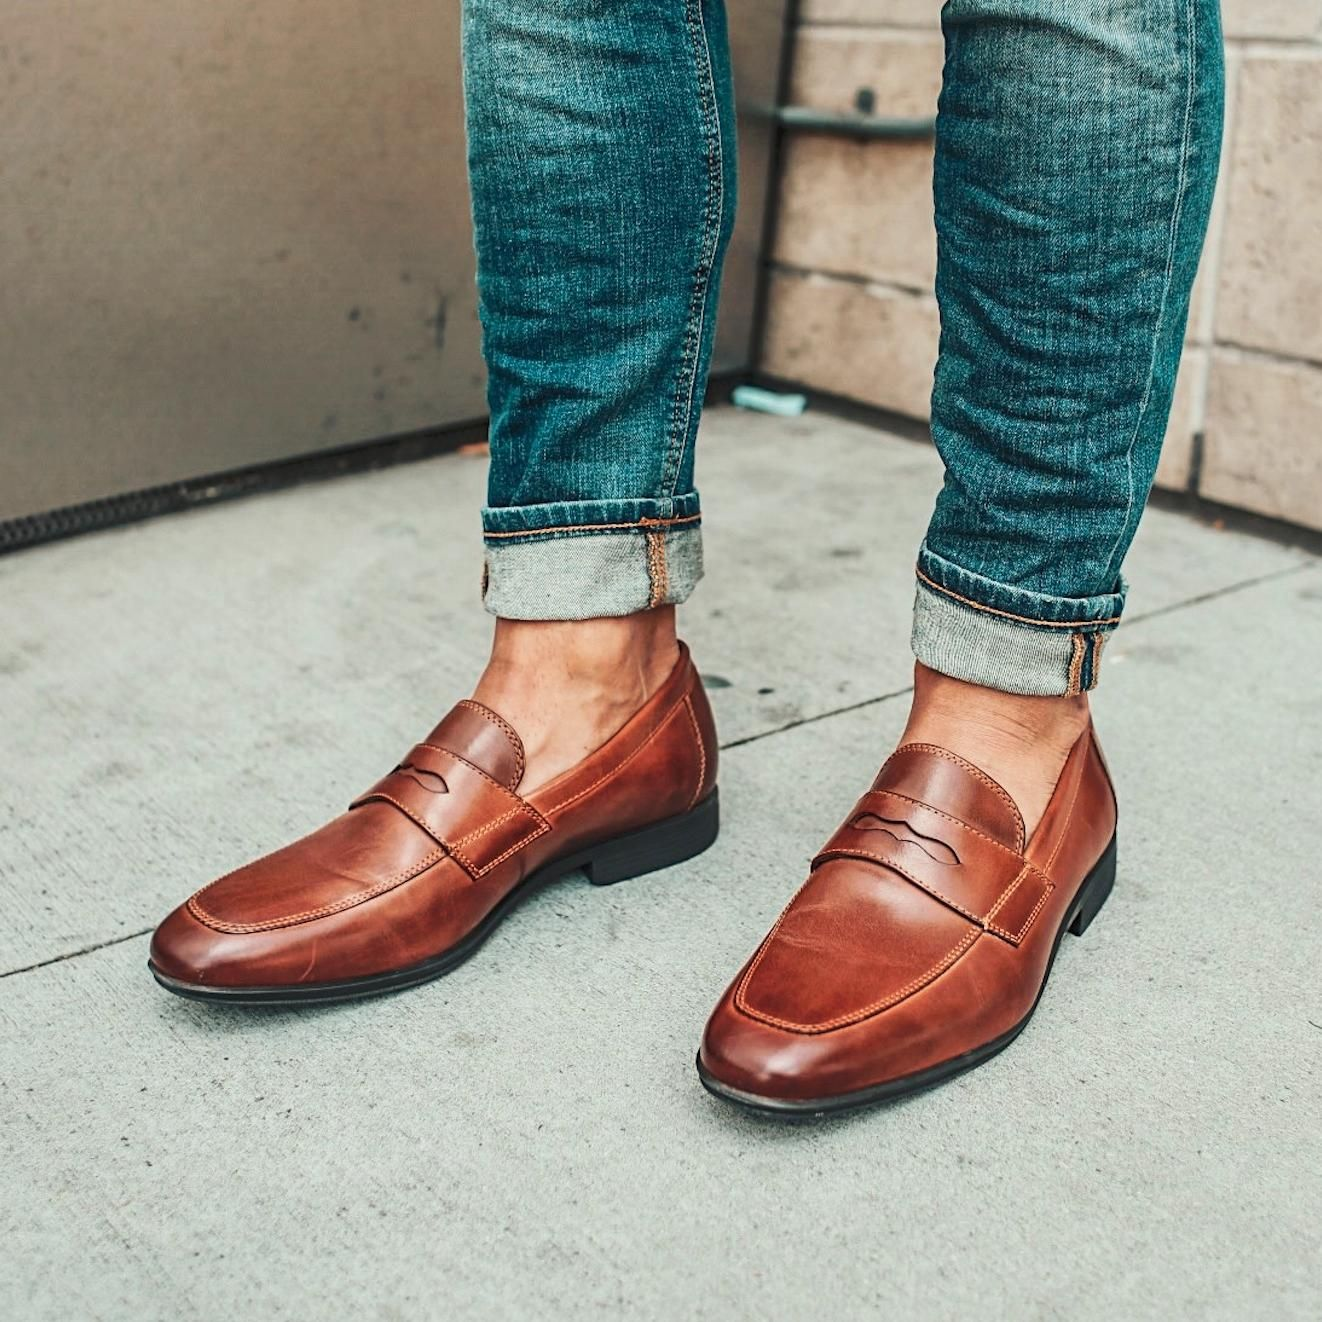 5417538e66e Penny loafers + denim   a modern take on the classics.  Trend Styled ...